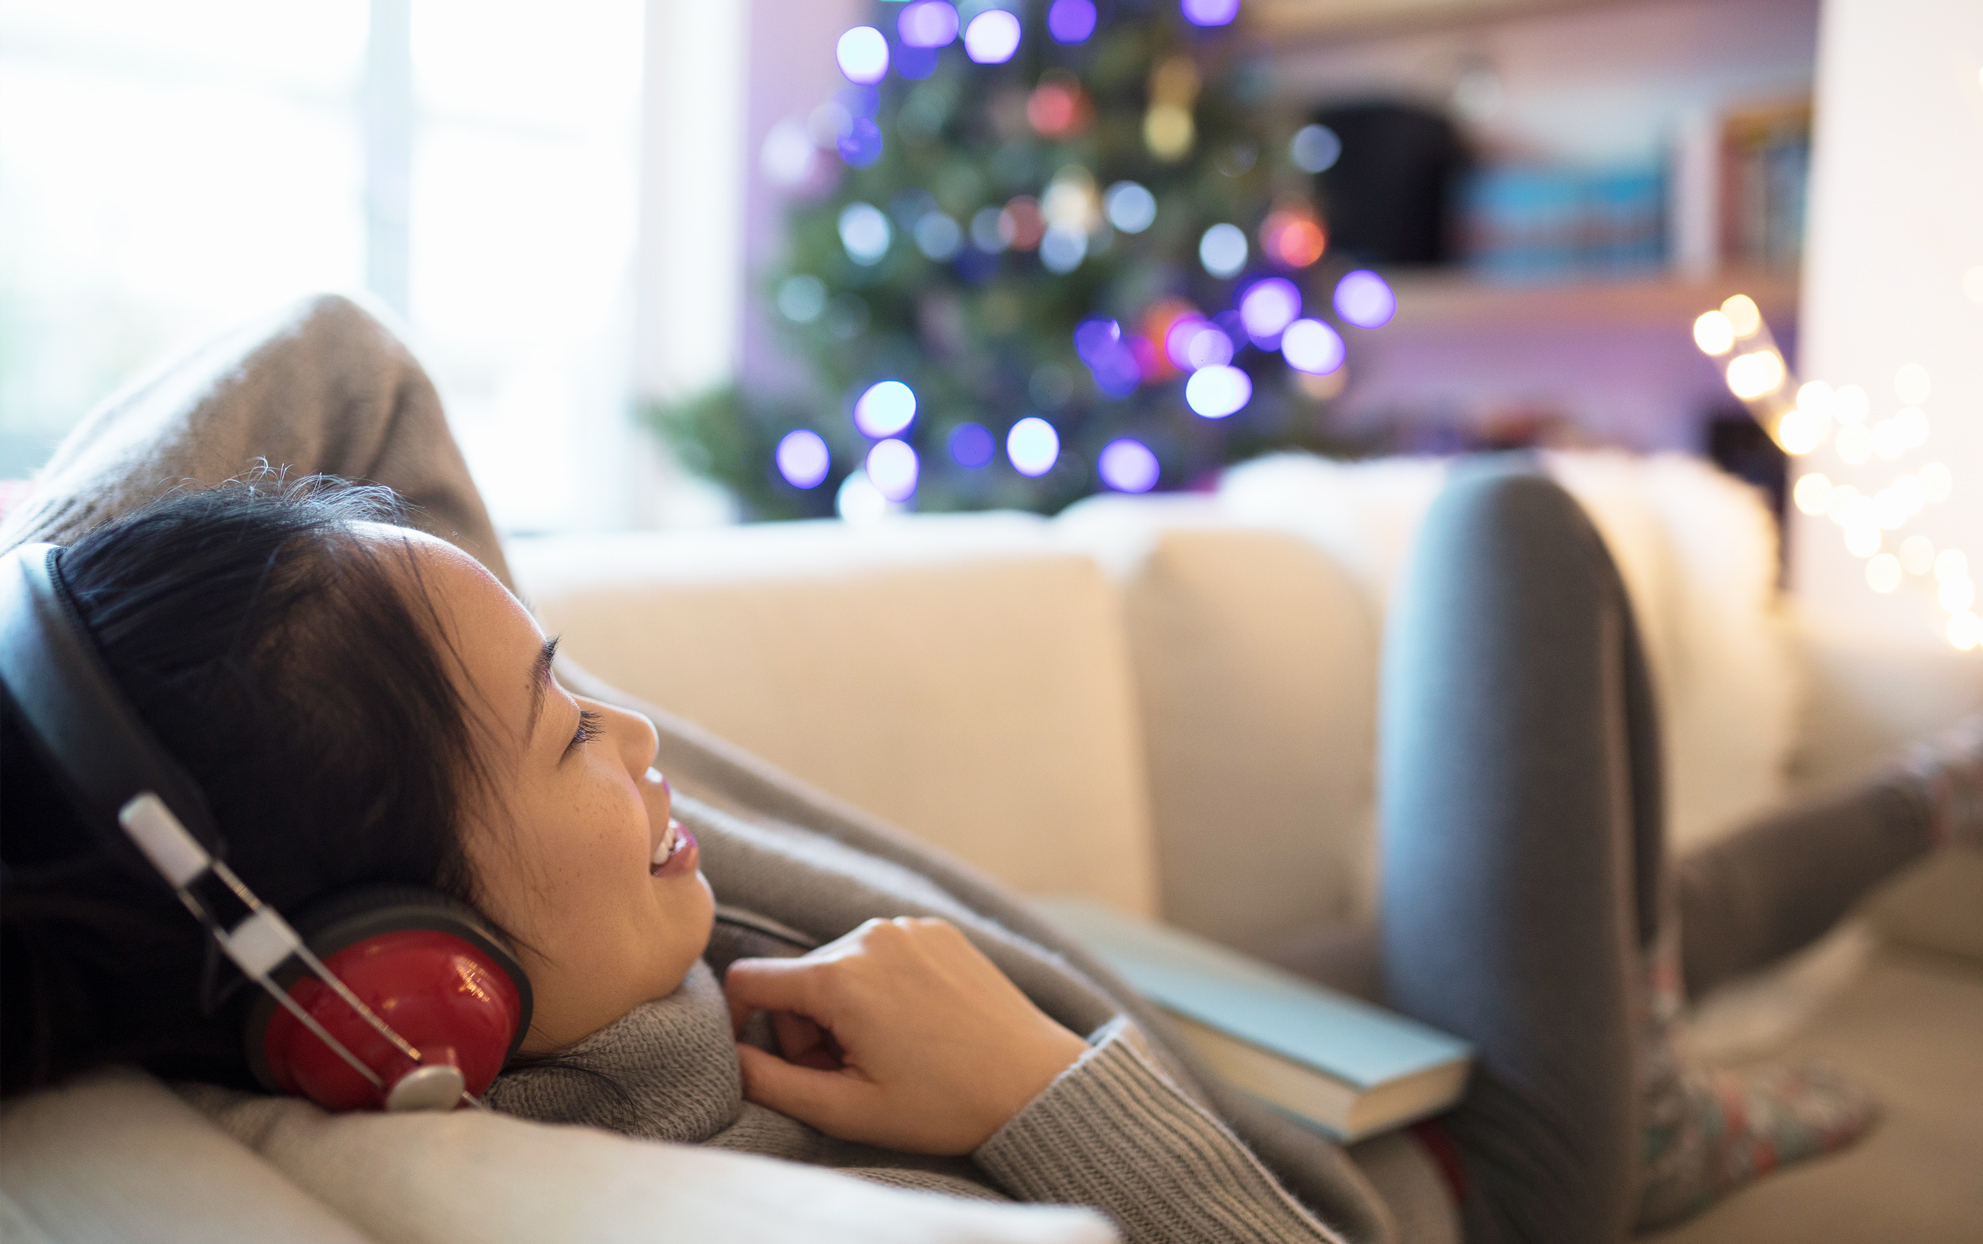 Asian Girl With Red Headphones on Couch by Christmas Tree